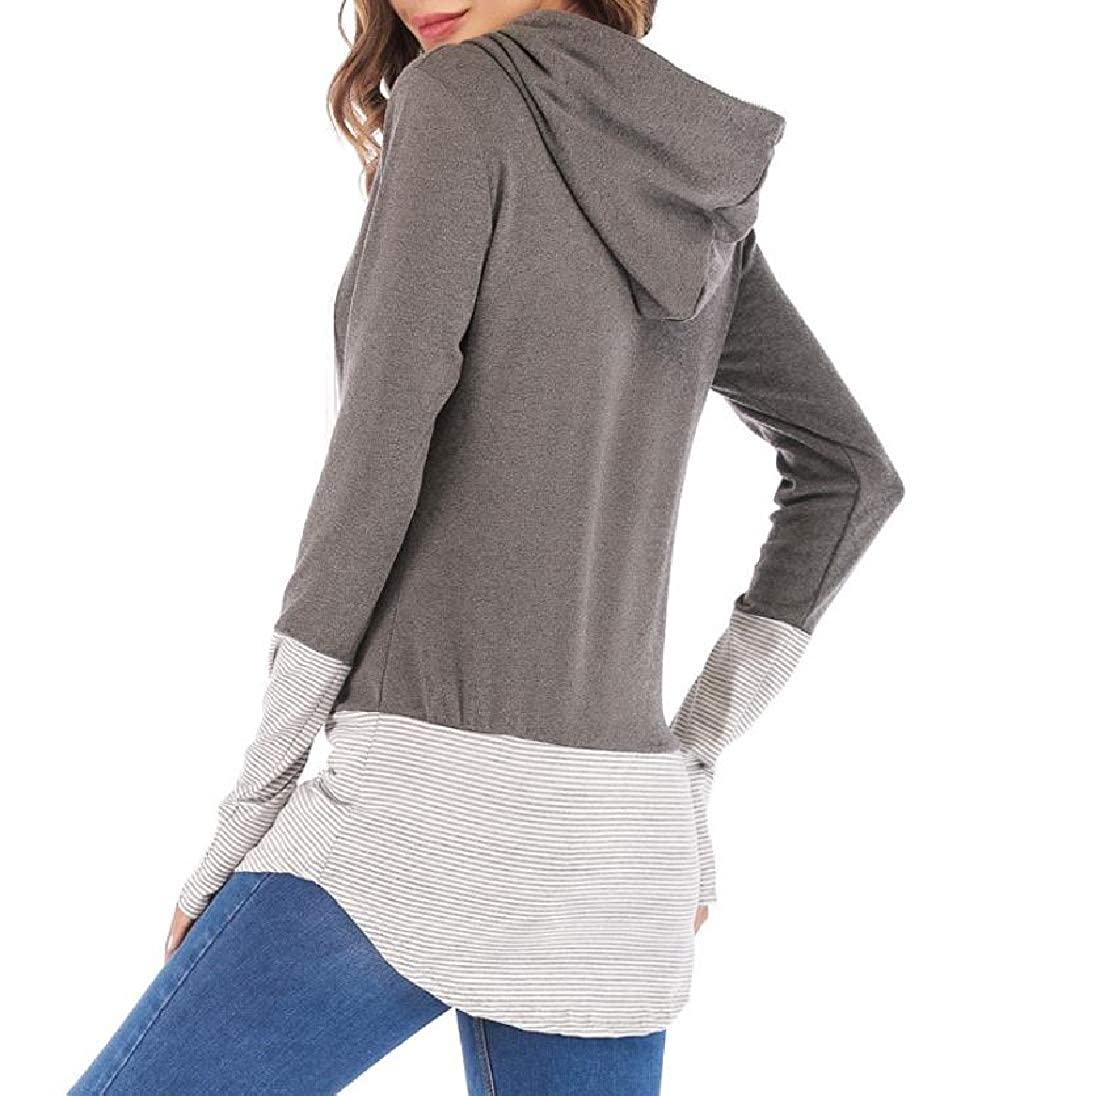 YUNY Outwear Splicing Striped Fashionable Pullover Hoodie Top Dark Grey XS